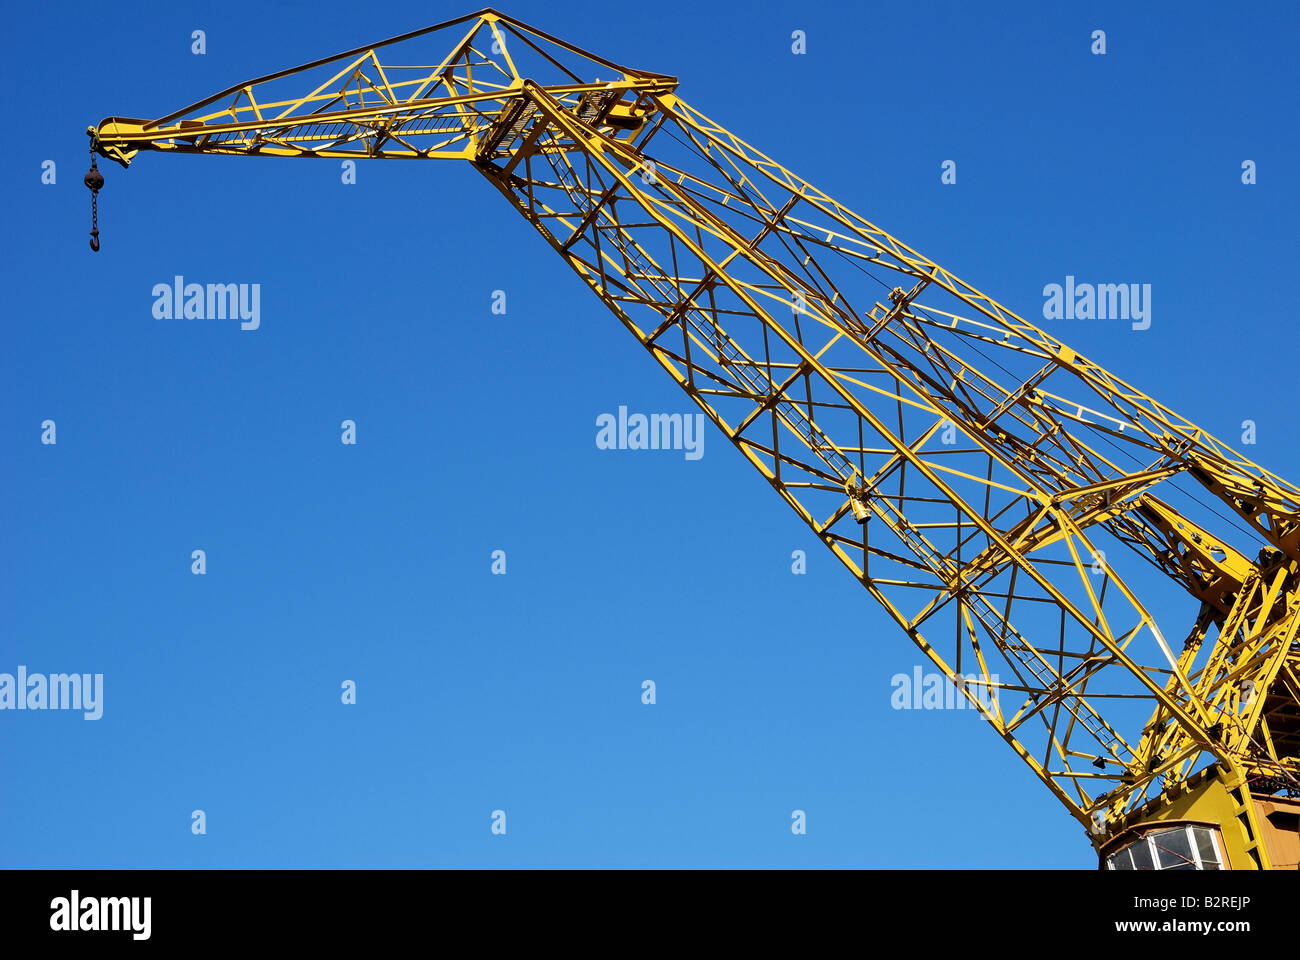 Elevating Cranes on a mooring in Puerto Madero. Argentina - Stock Image